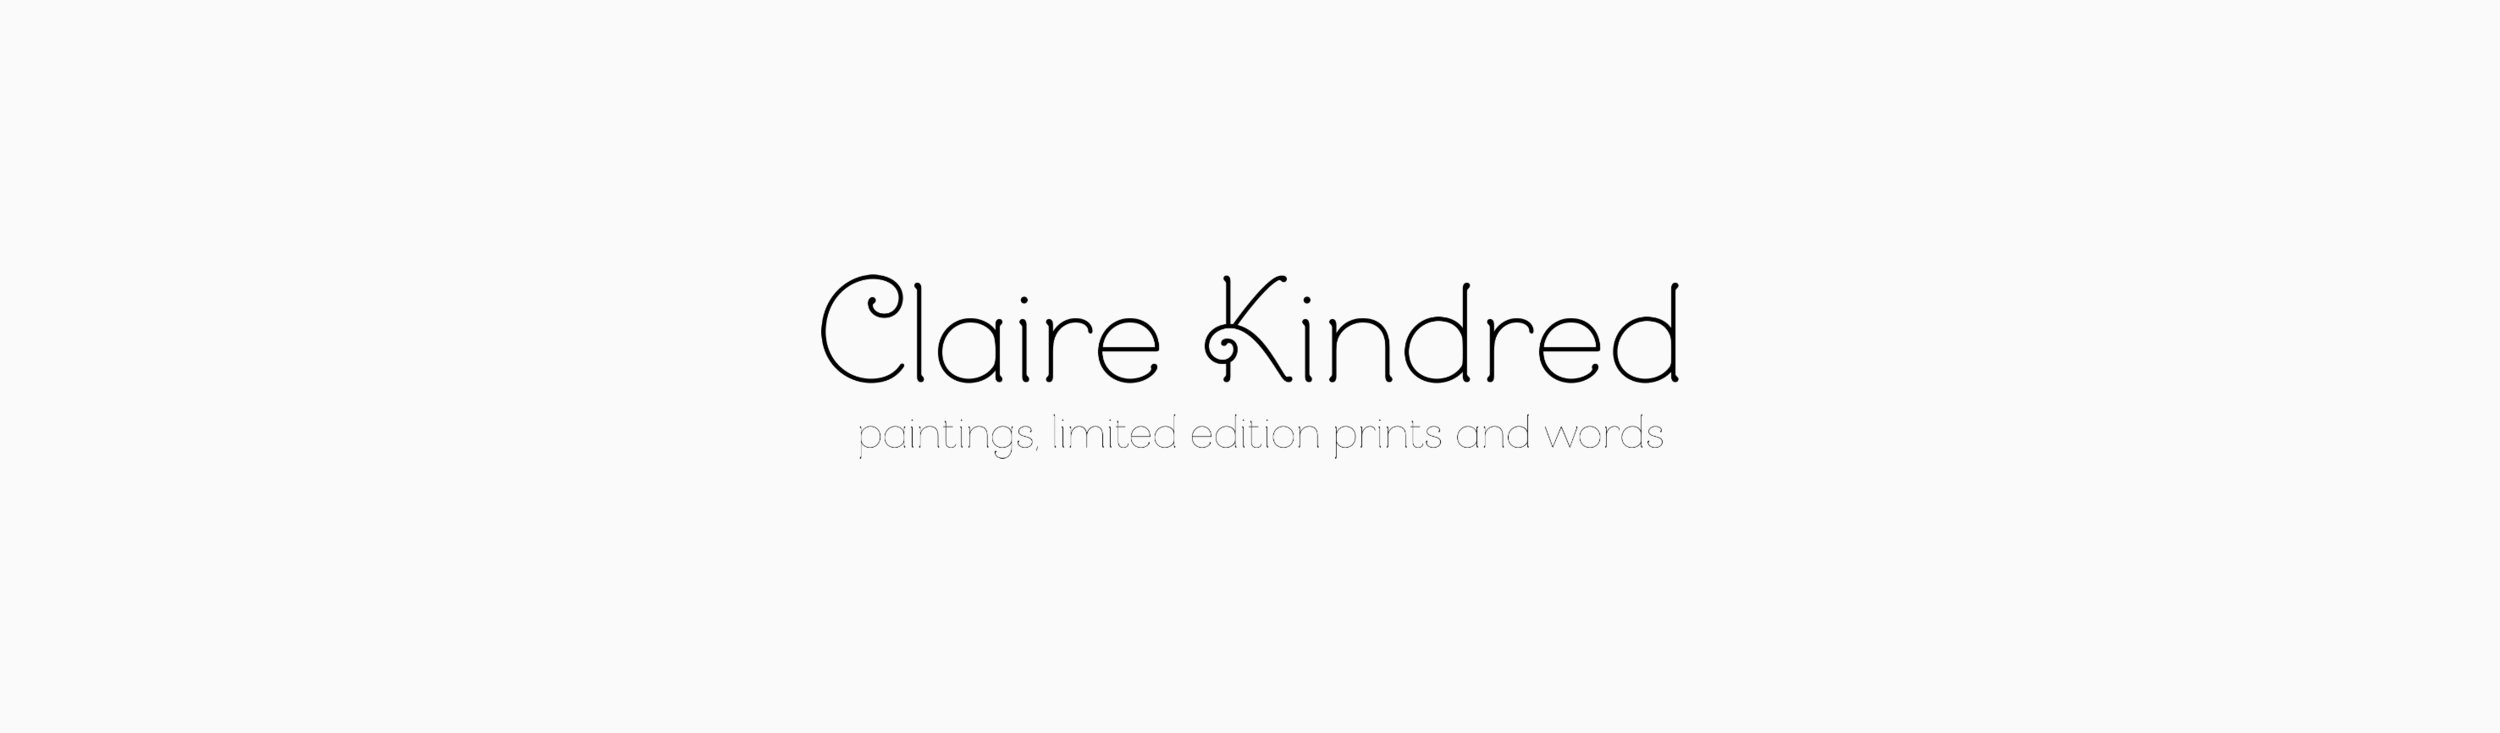 Claire Kindred